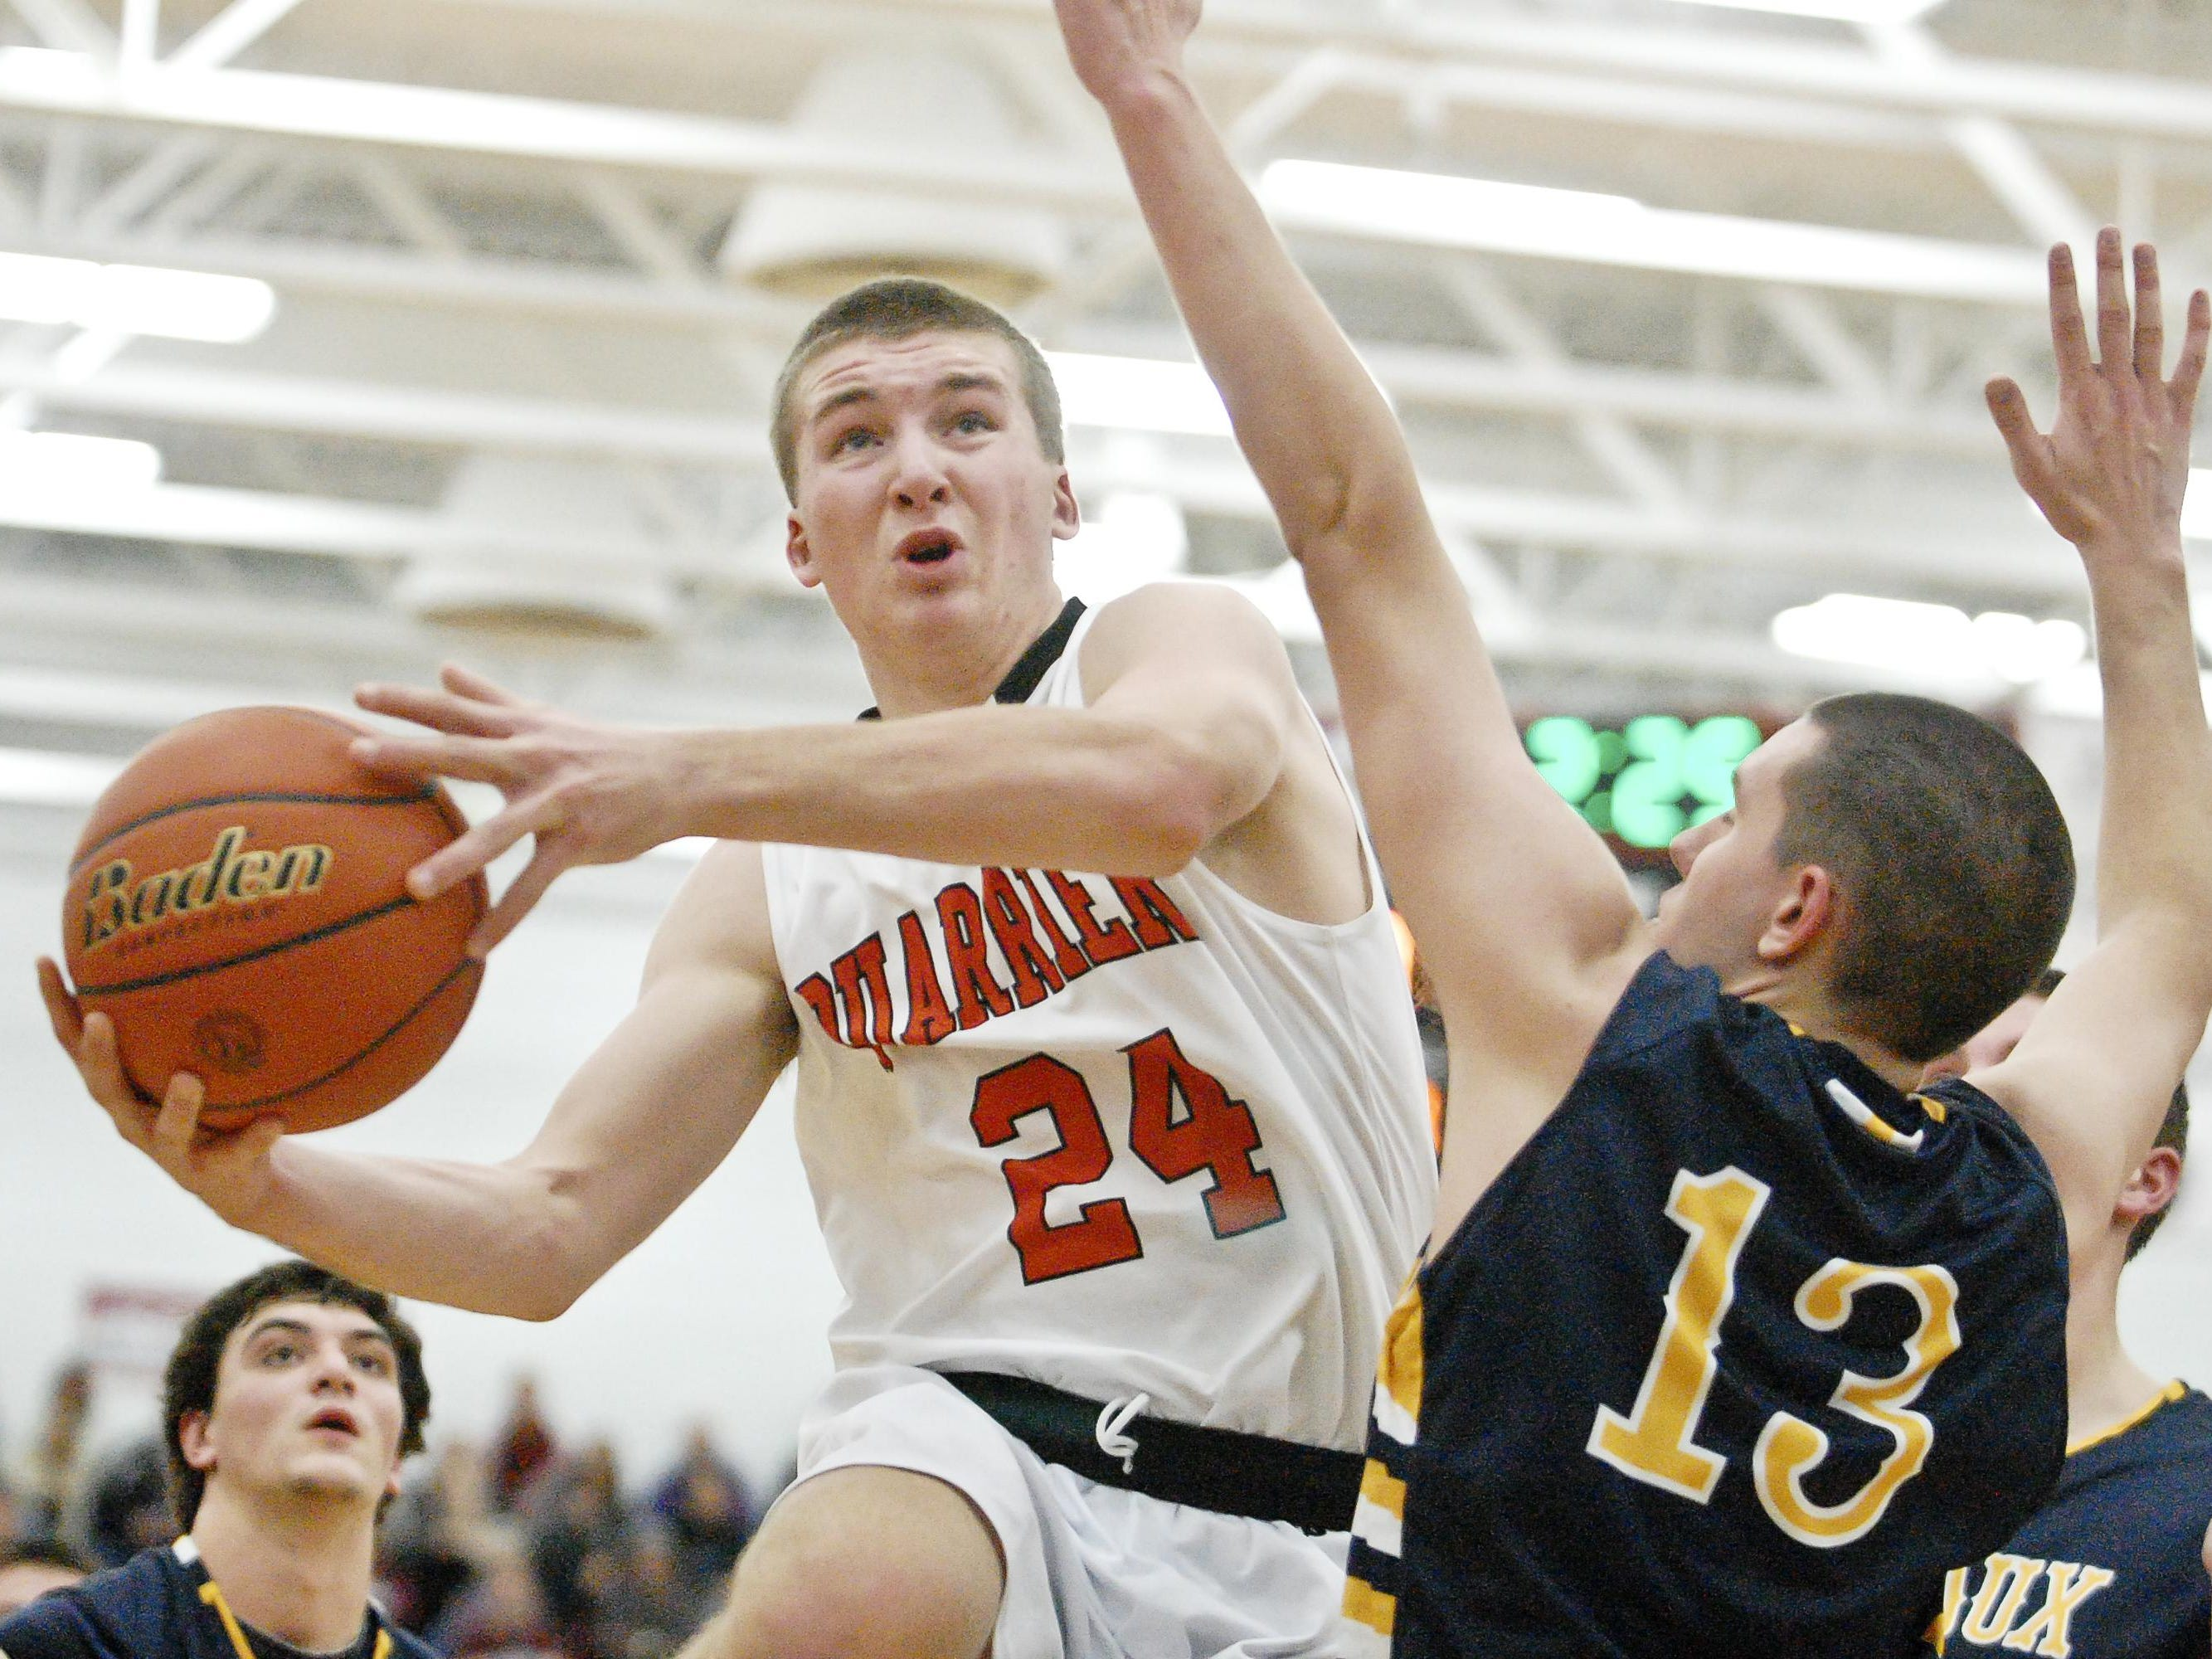 Ty Hoglund of Dell Rapids leaps toward the basket Dec. 31 against Sioux Valley at Brookings. Hoglund surpassed 1,000 career points in the first game of the season, set a school record for most points scored in the next game and led the Quarriers with 26.3 points per game.